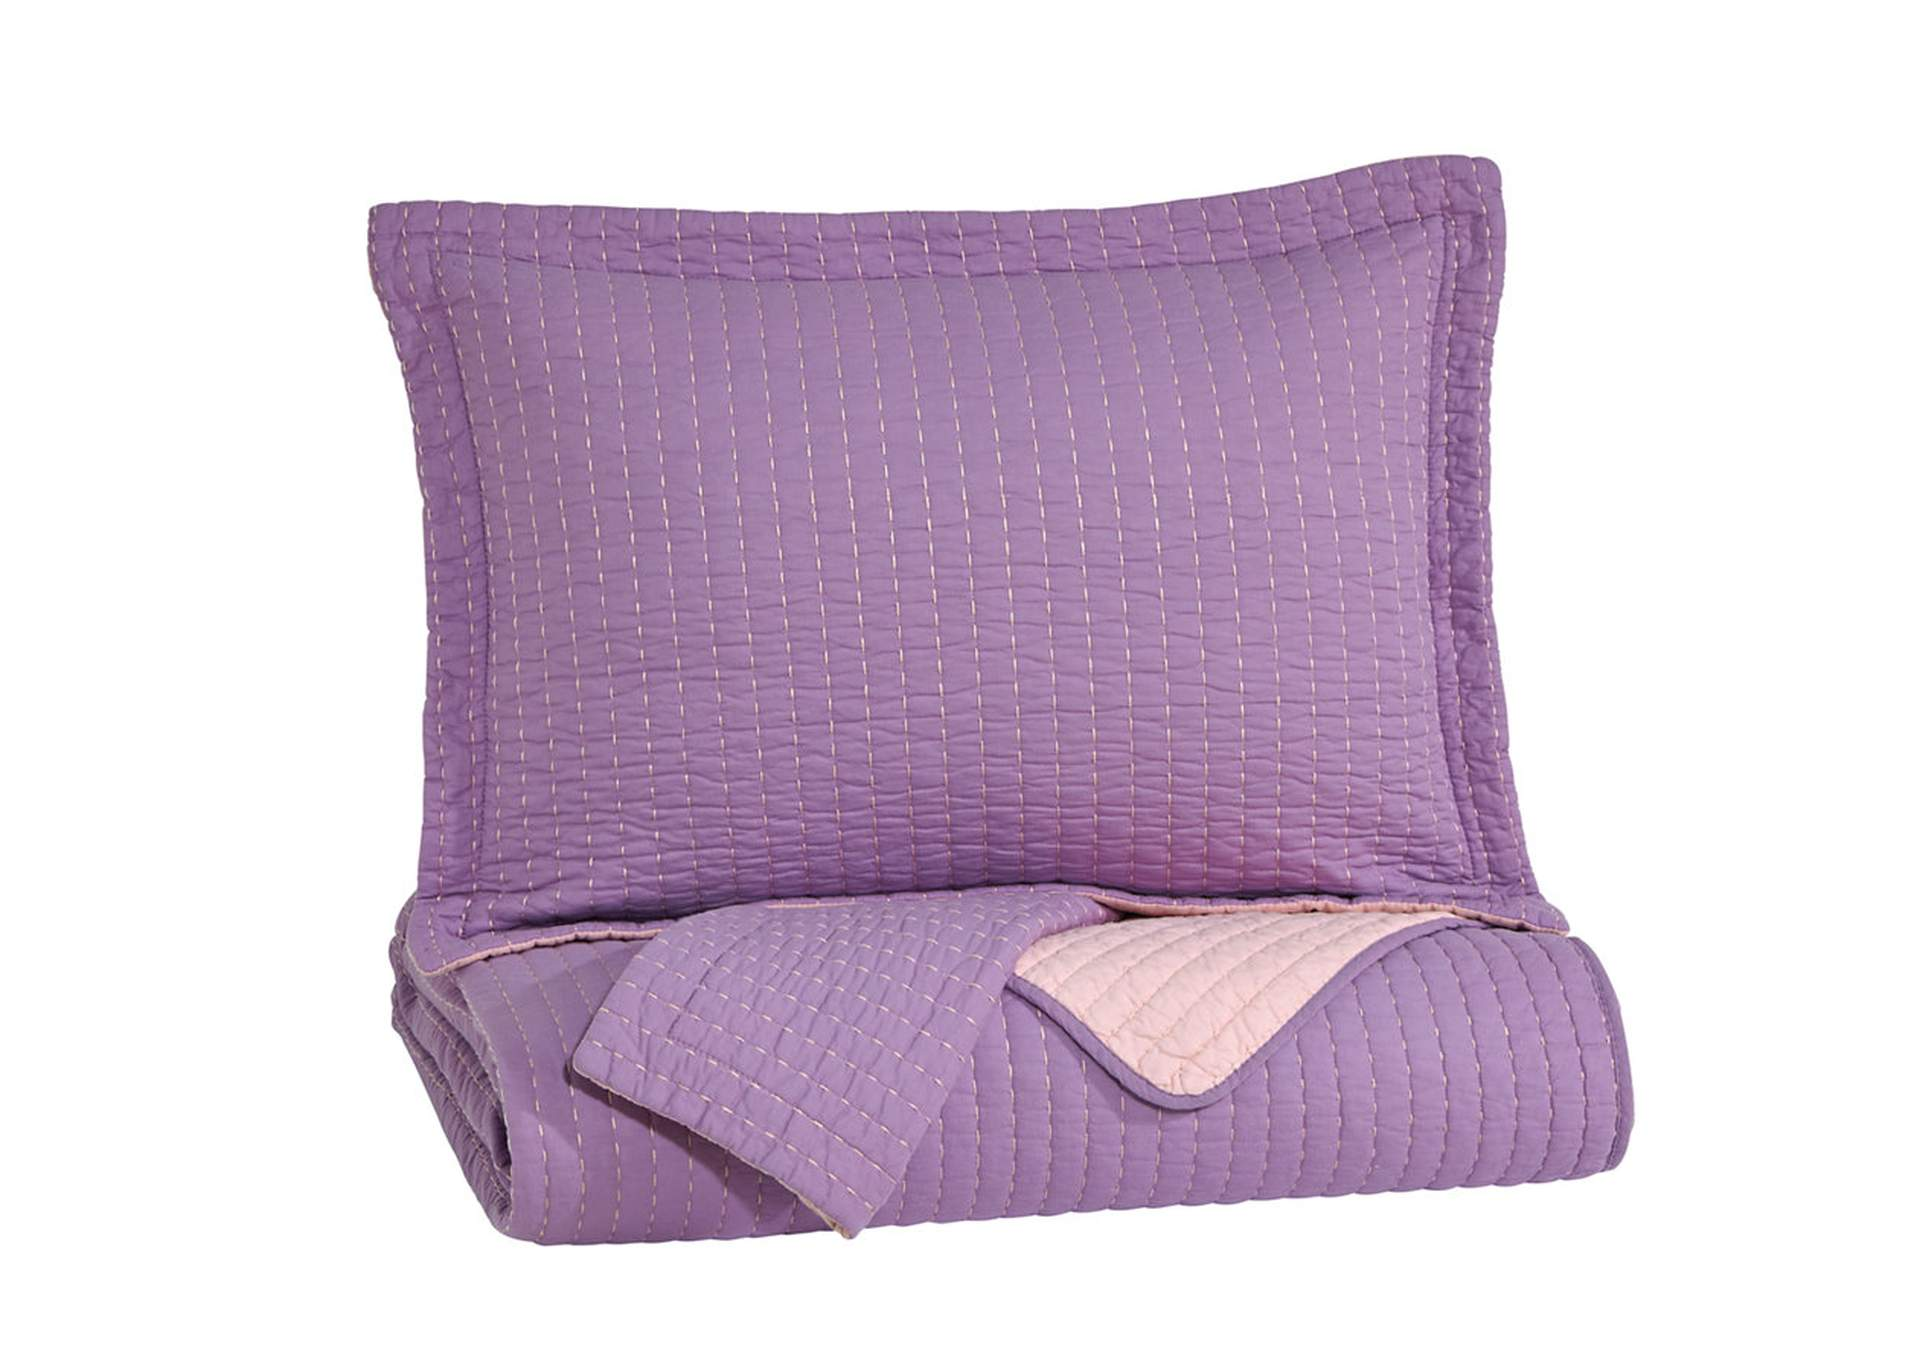 Dansby Lavender/Pink Full Coverlet Set,Signature Design by Ashley